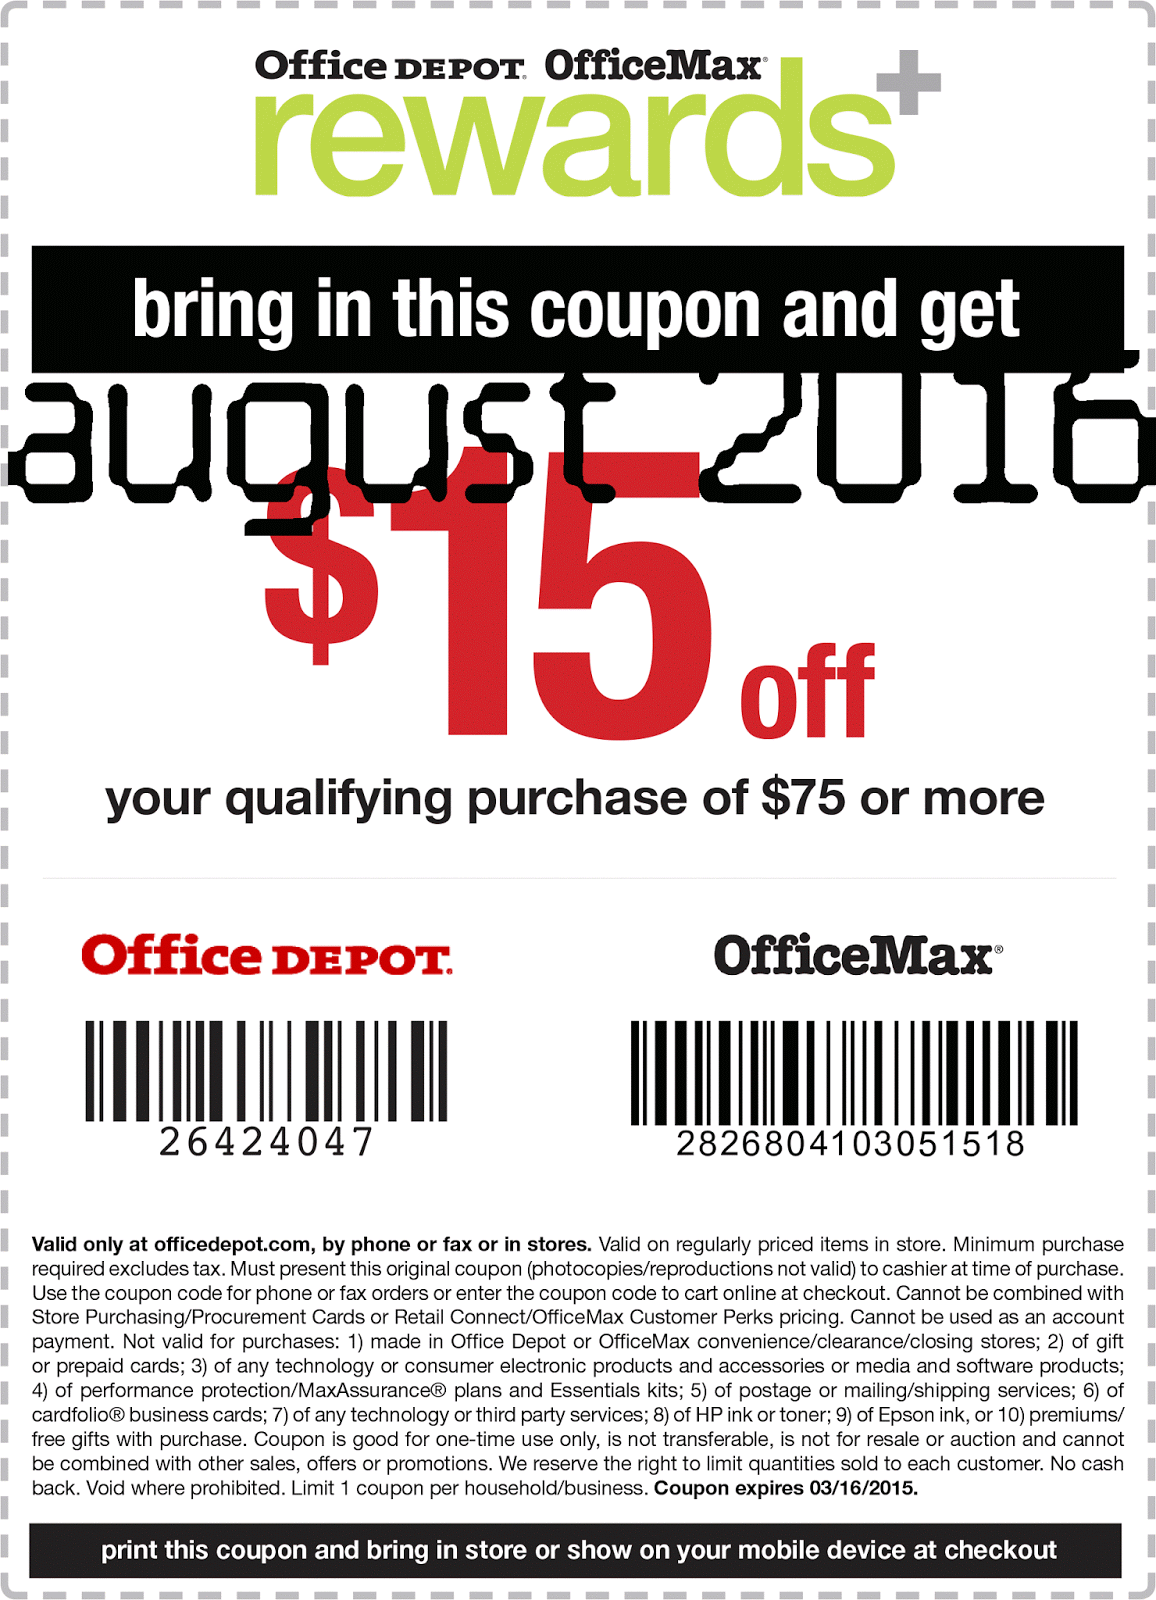 Free Printable Coupons Office Max Coupons Office Max Free Printable Coupons Office